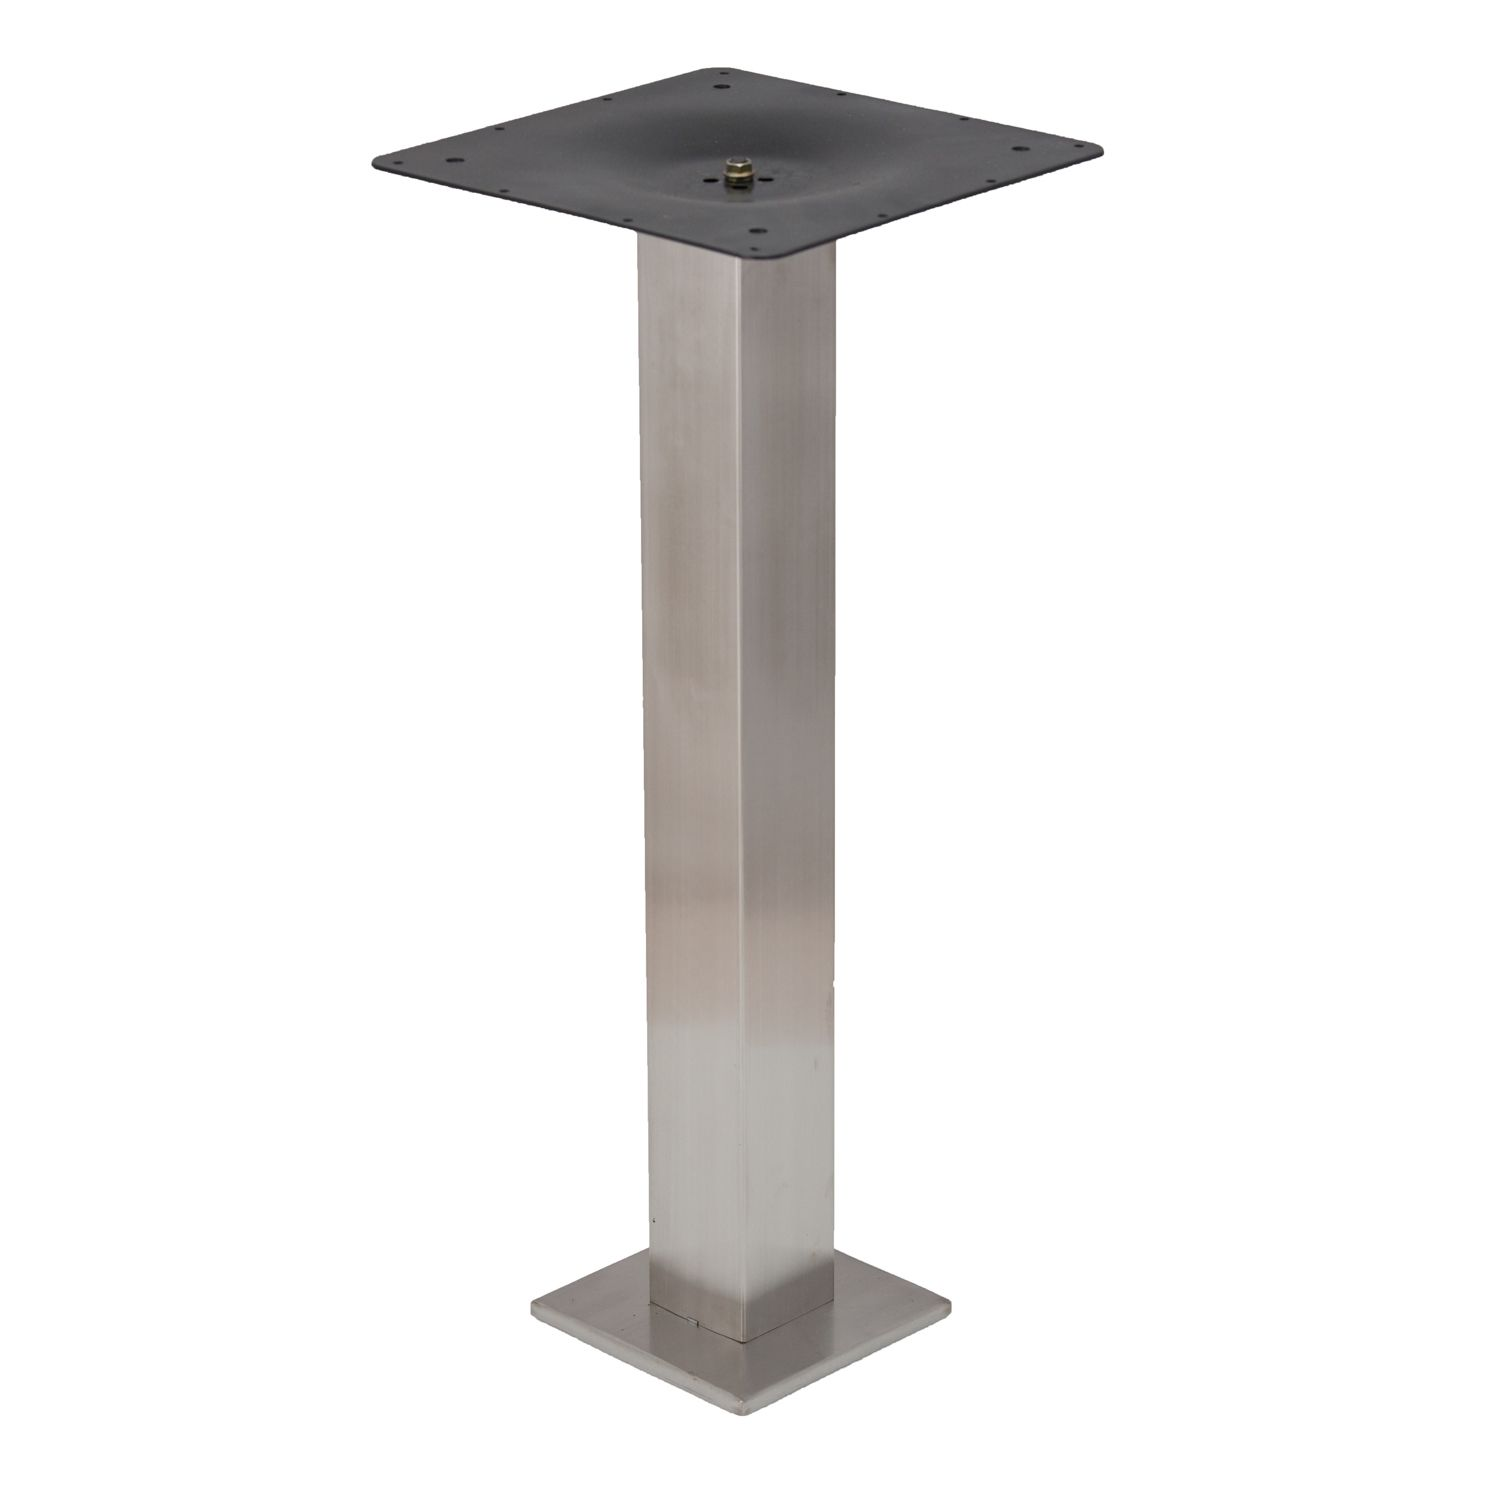 Square Eclipse Bolt Down - Stainless Steel Table Base (Table Base)